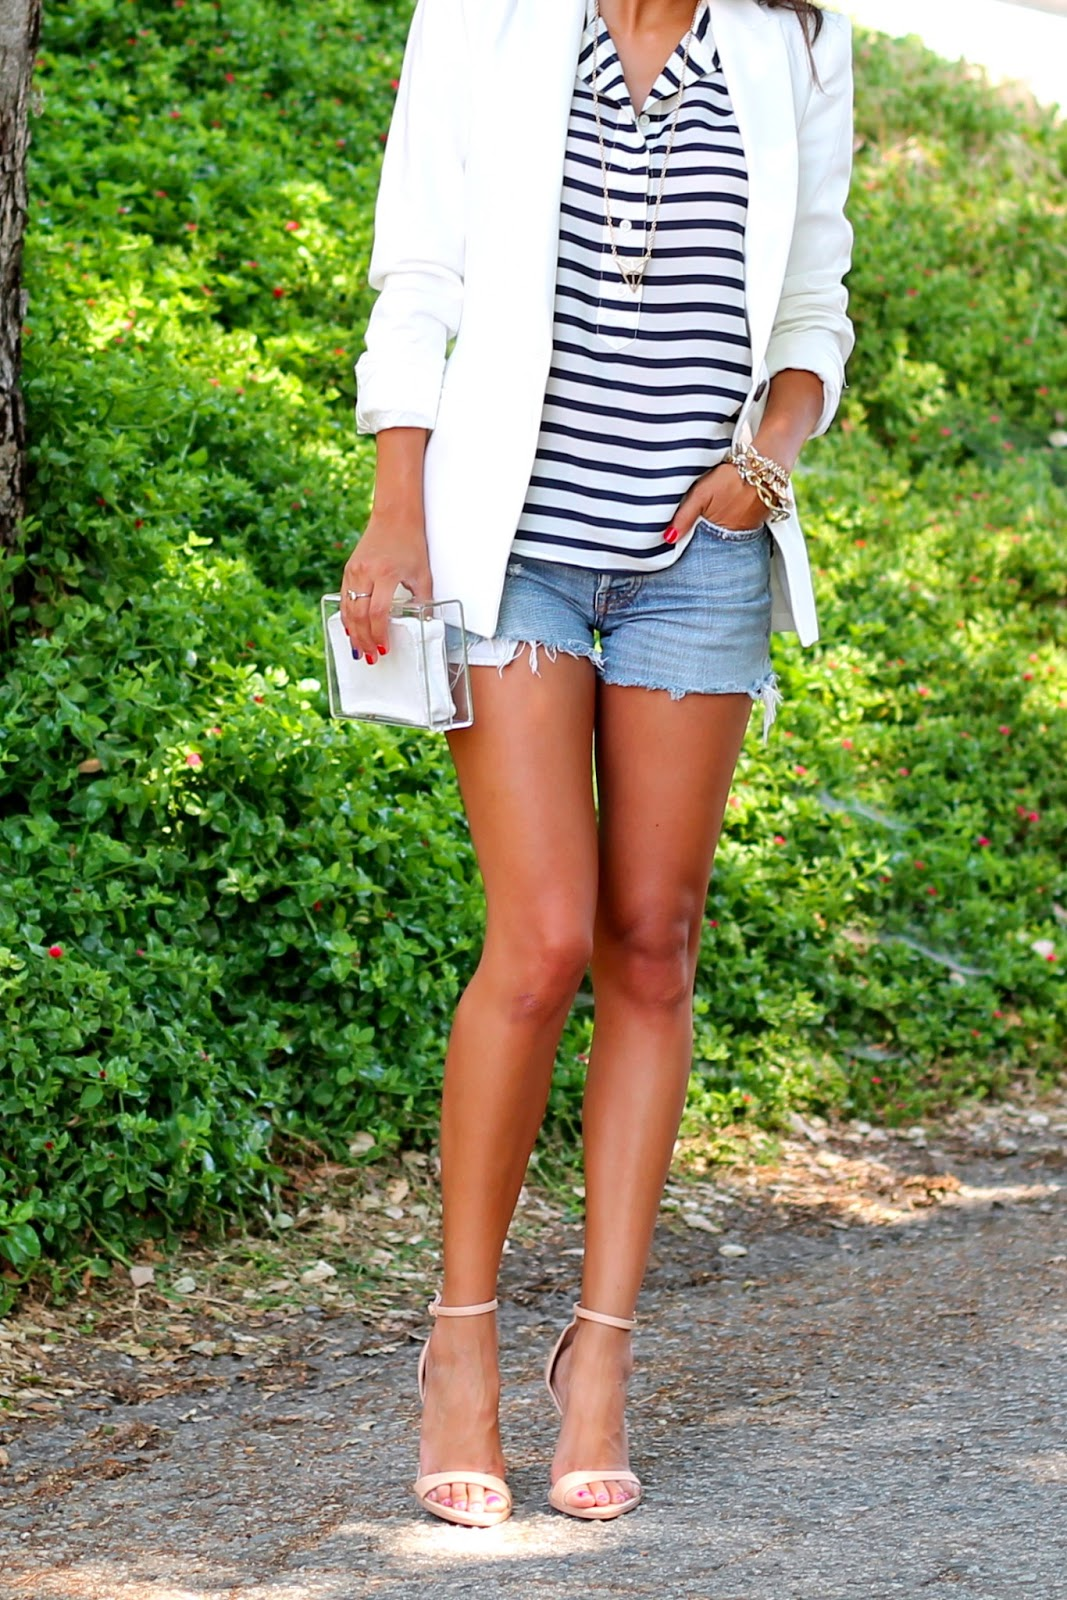 Pursuit Of Shoes is wearing a striped top from J. Crew, white blazer from Zara and clutch from Missguided